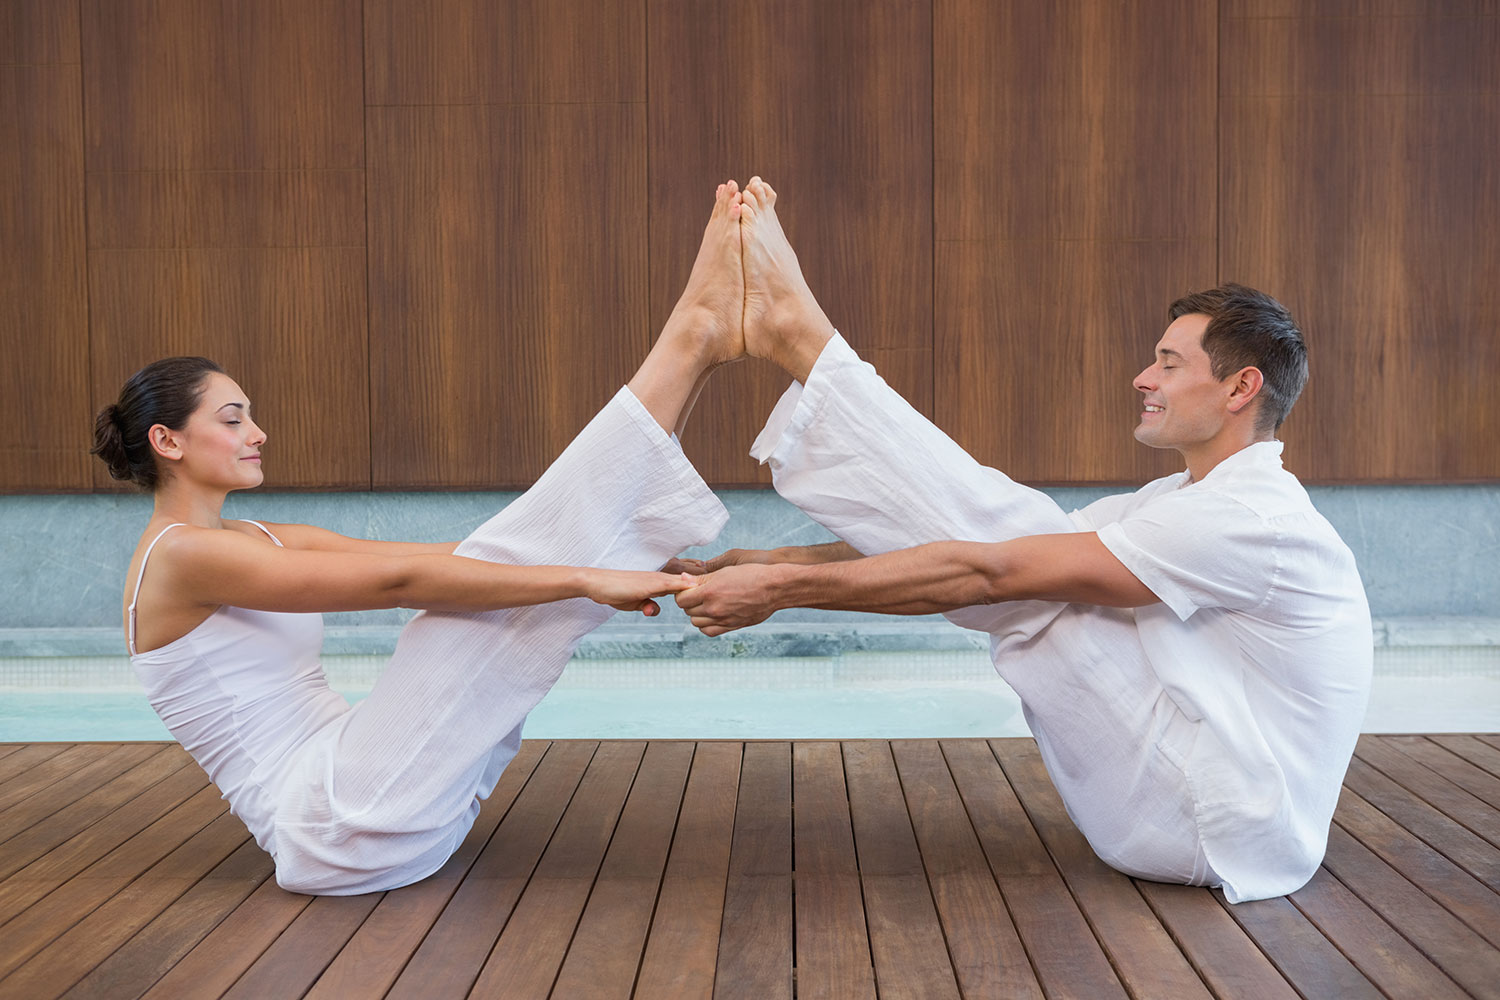 10 Beginner Partner Yoga Poses Any Couple Can Do to Build Intimacy